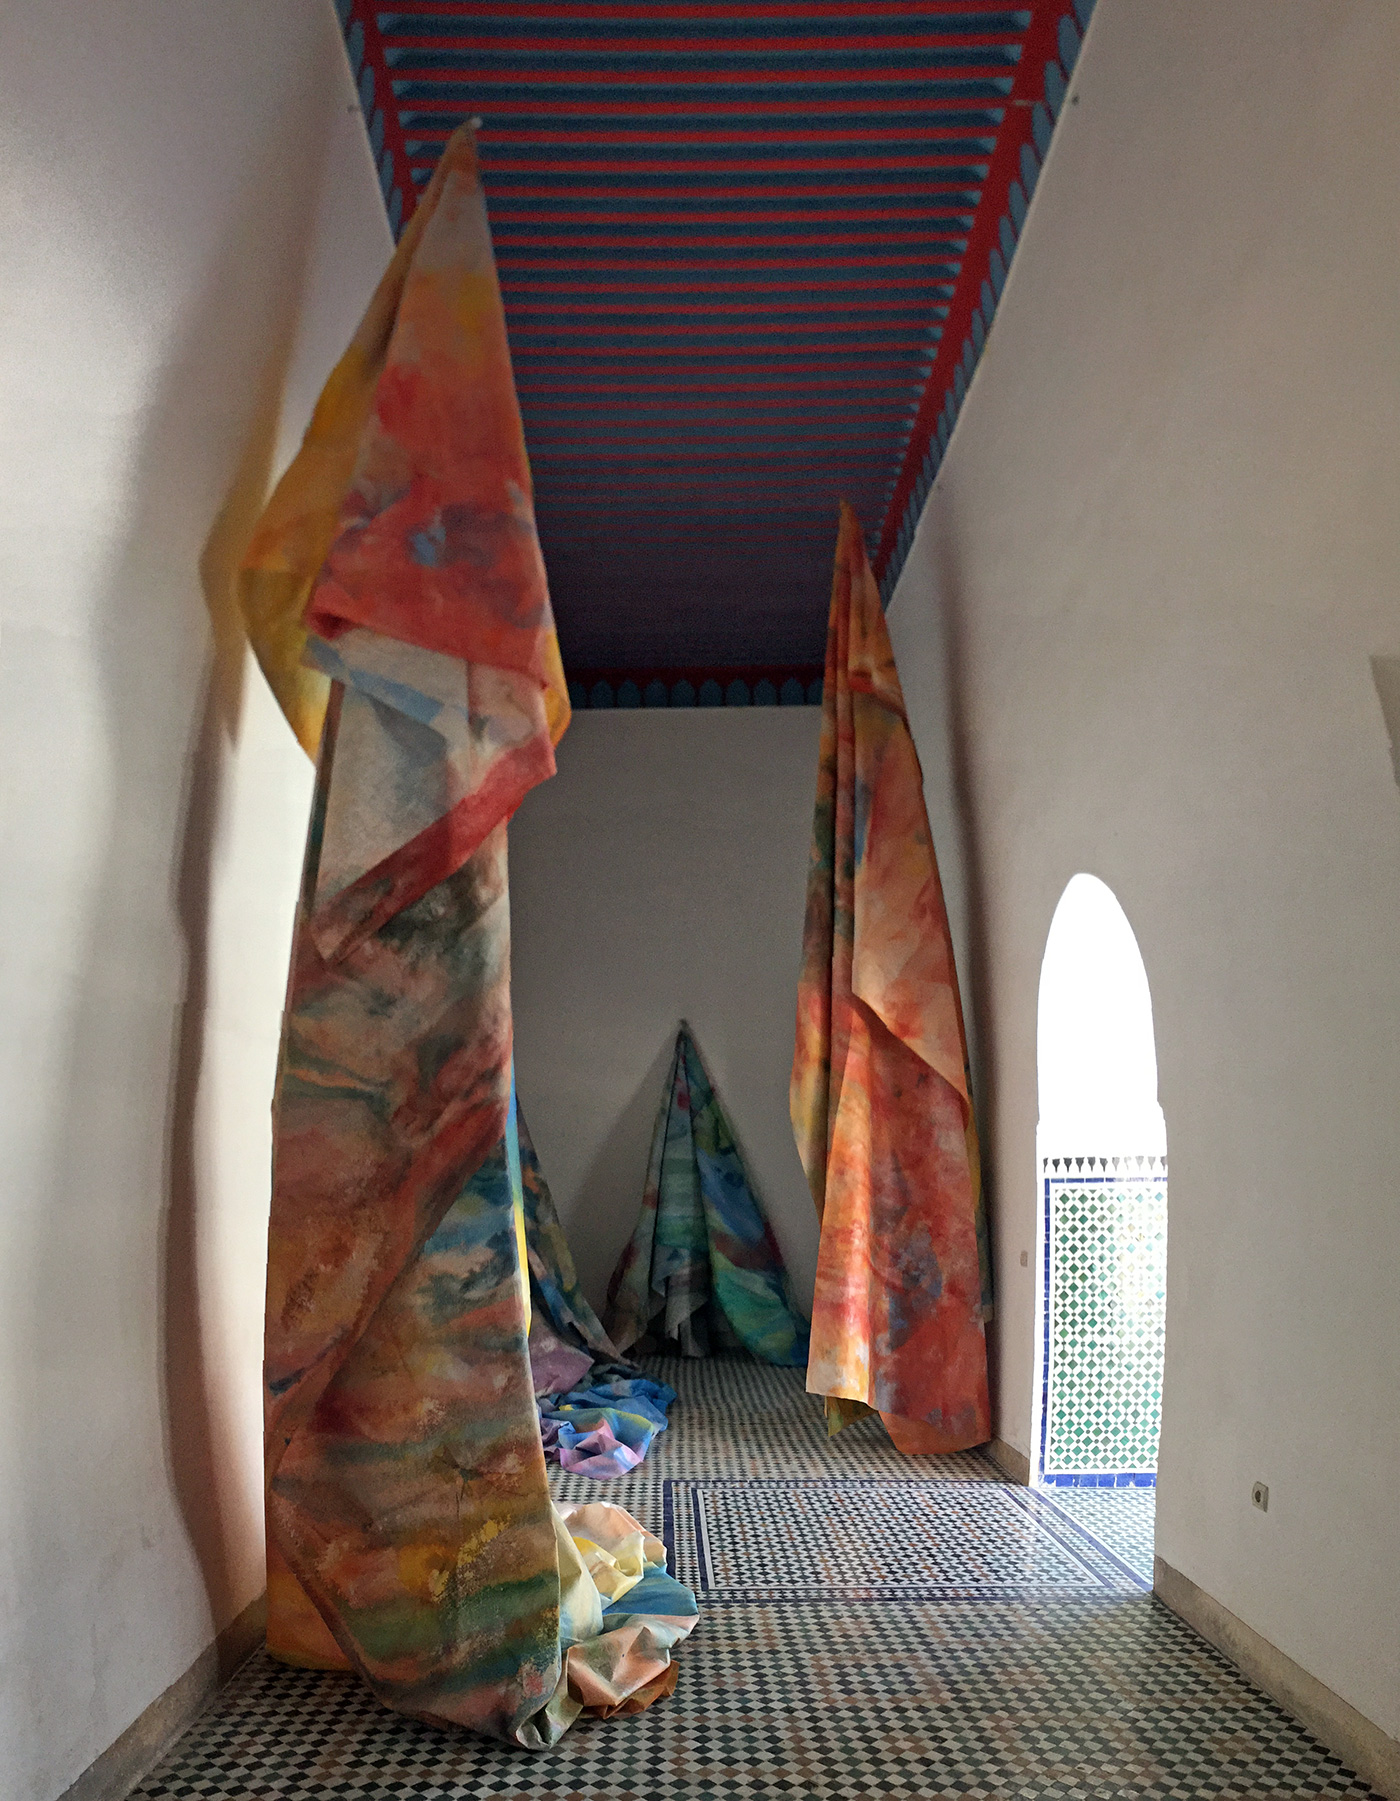 Sam Gilliam's installation at Bahia Palace in Marrakech. (all photos by the author for Hyperallergic)